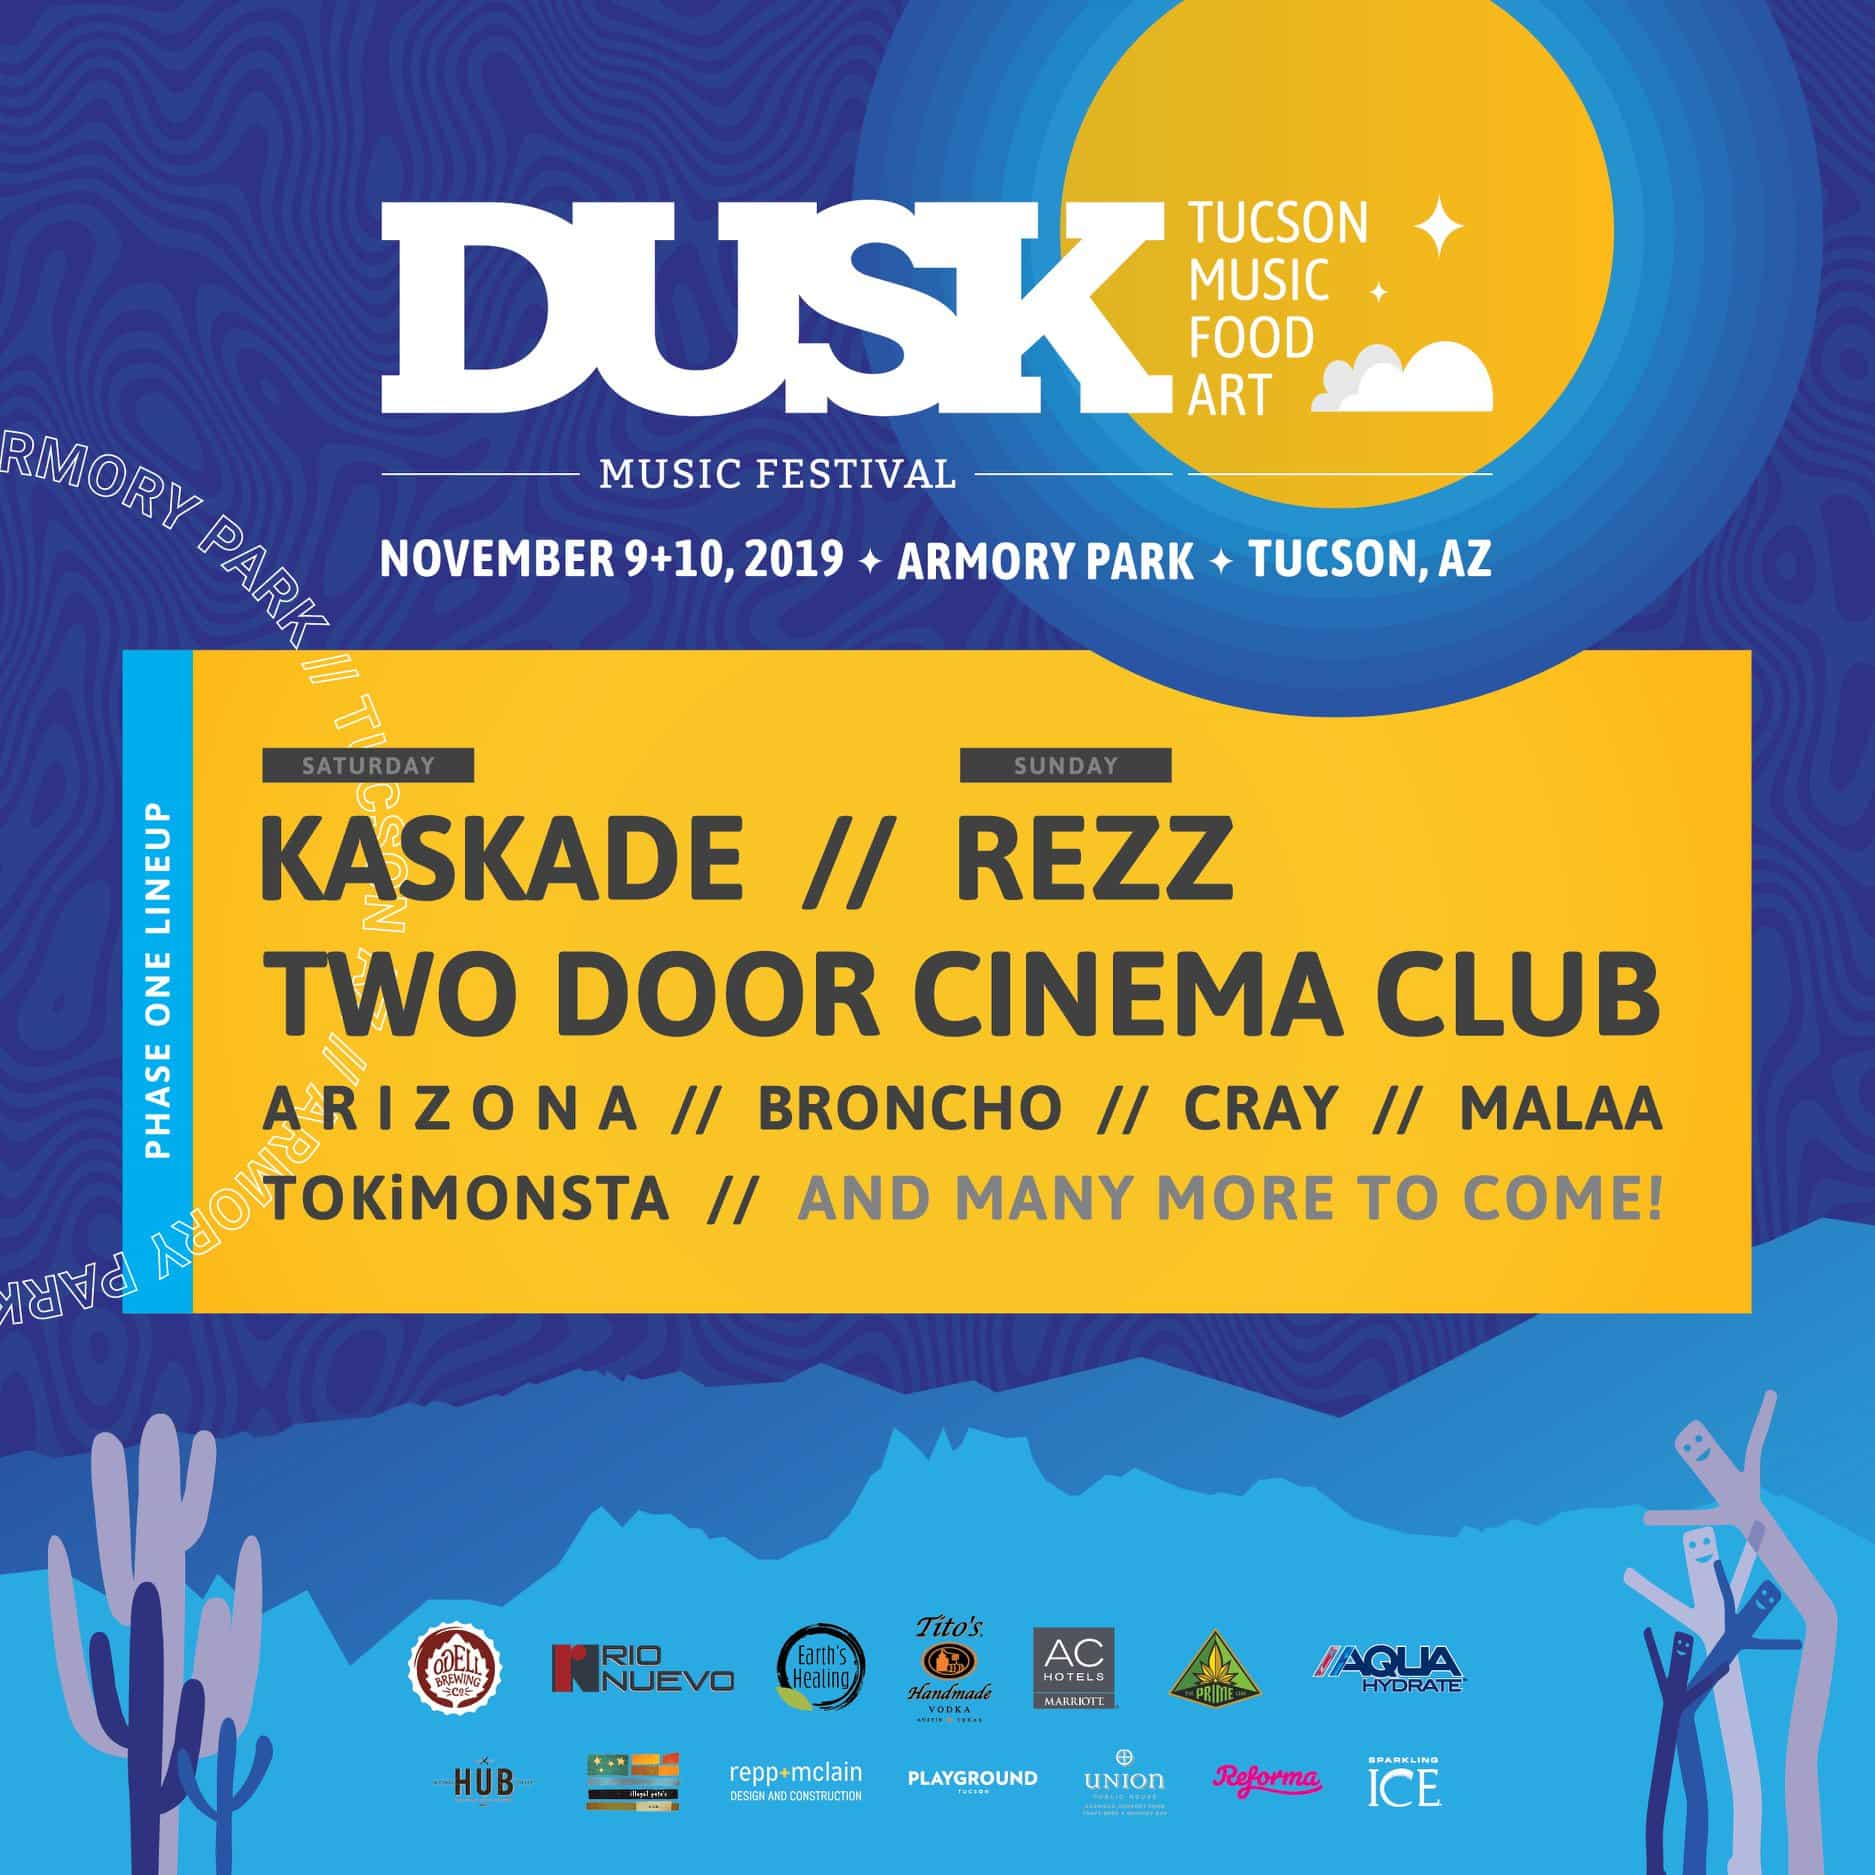 Dusk Music Festival 2019 Lineup - Fourth Annual Dusk Music Festival Returns To Tucson, November 9 & 10, 2019